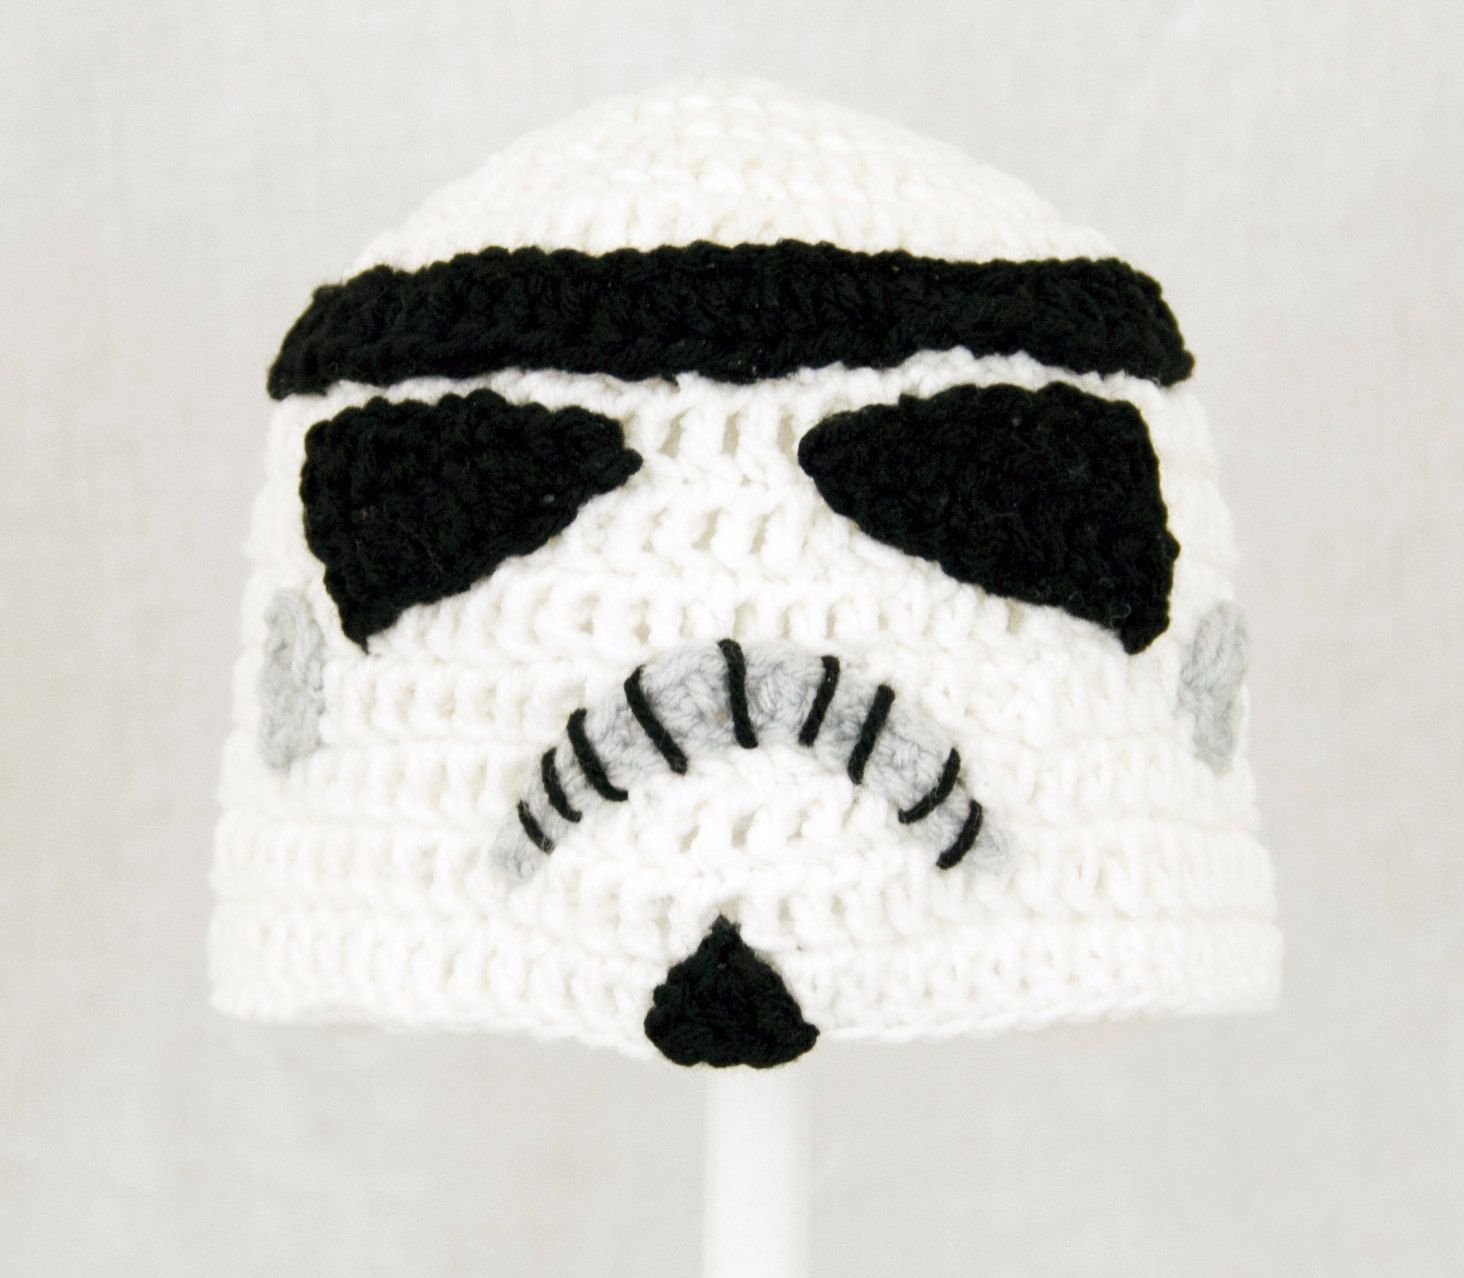 Storm Trooper Hat from Star Wars, Black and White Crochet Beanie ...